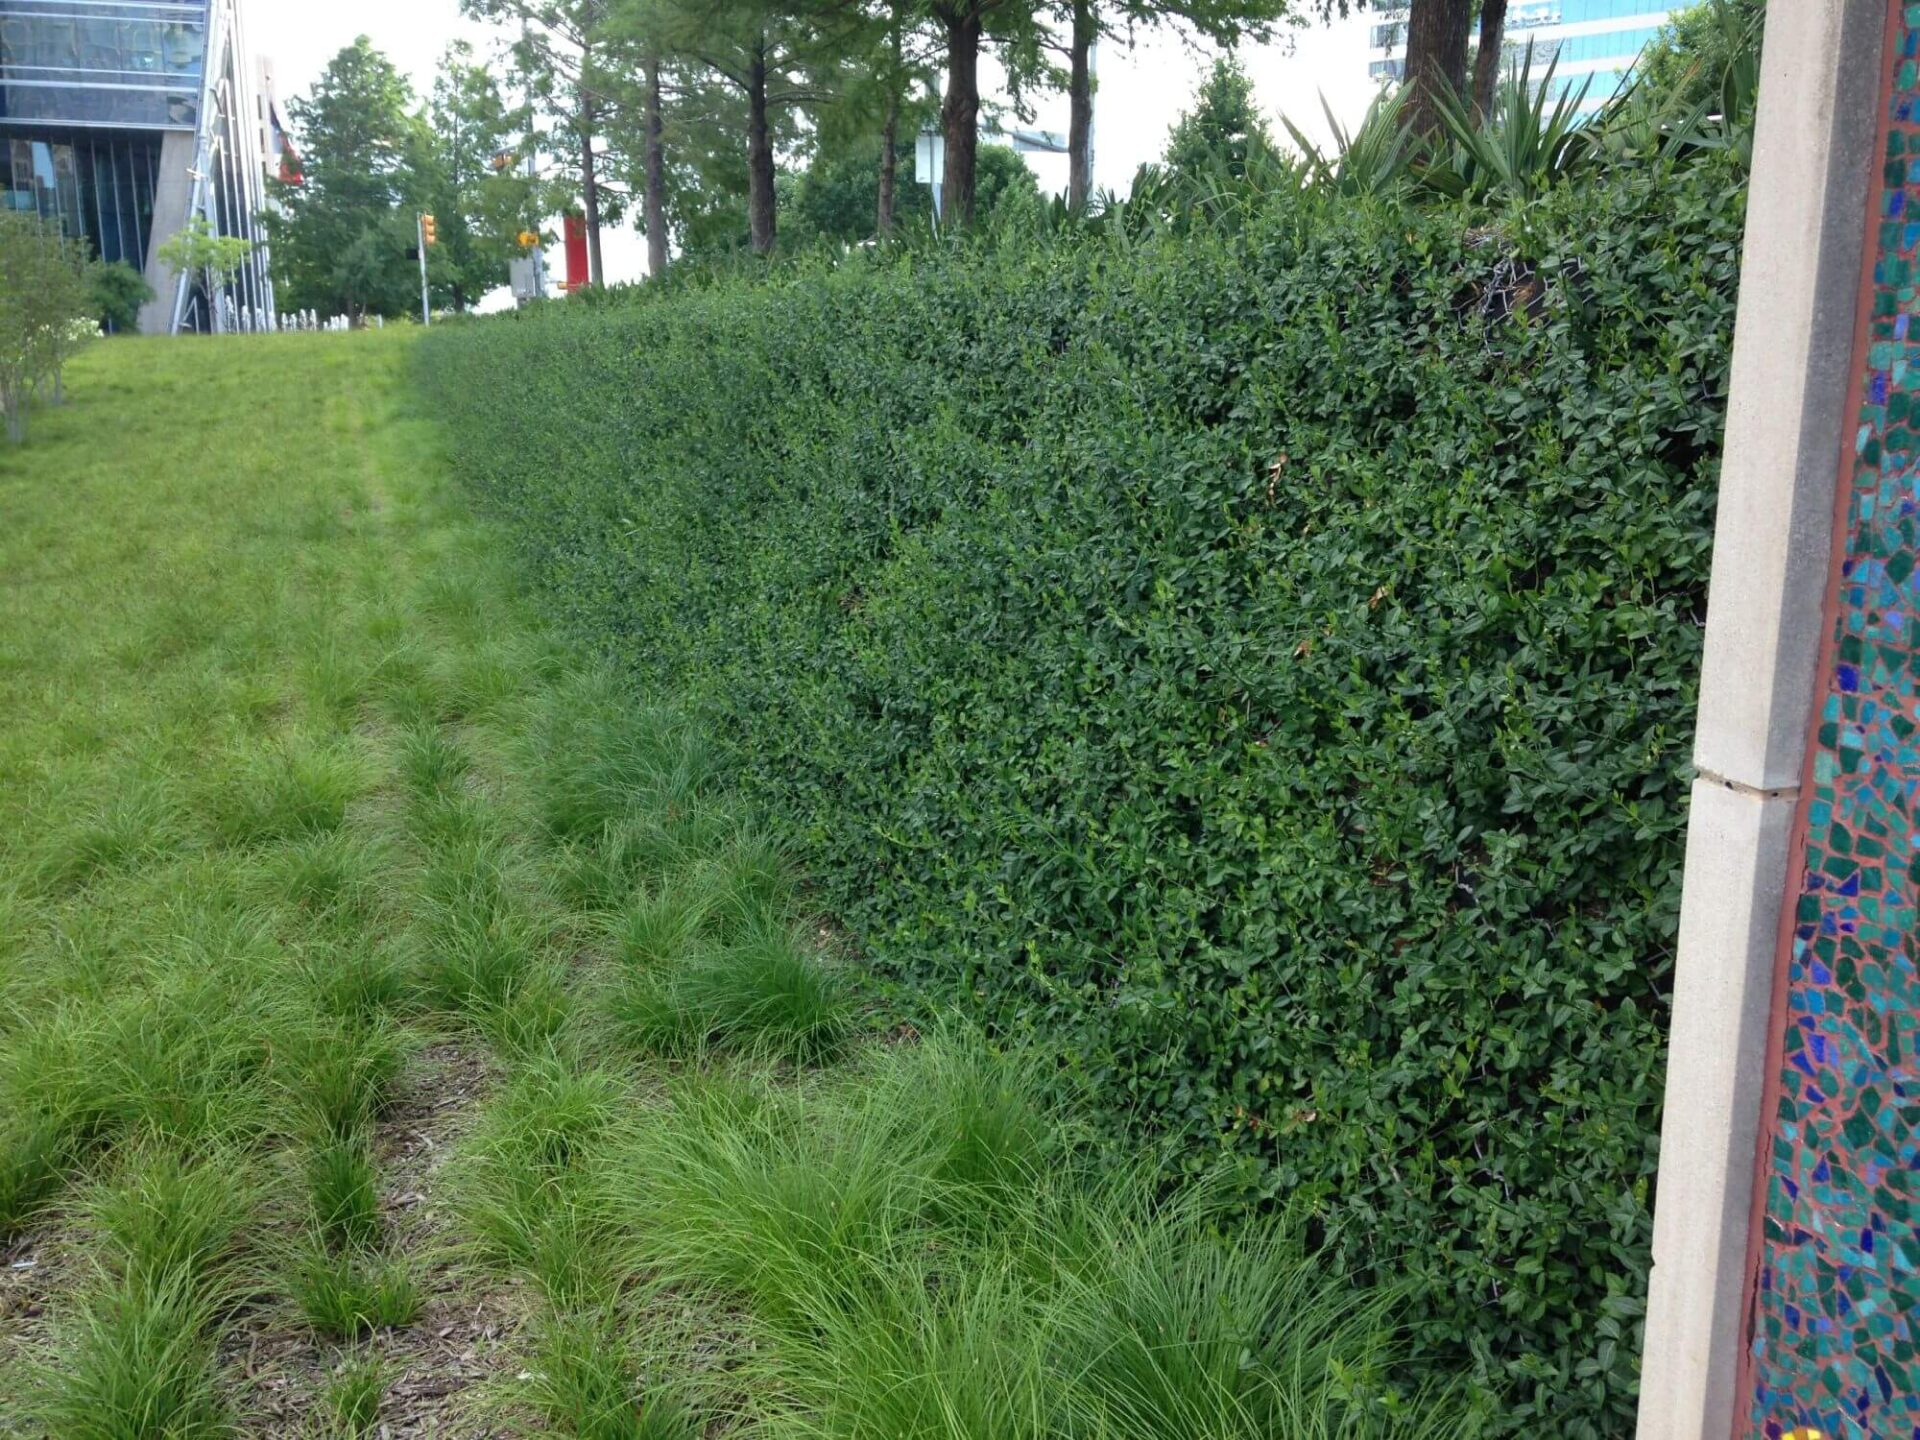 Green vegetated wall